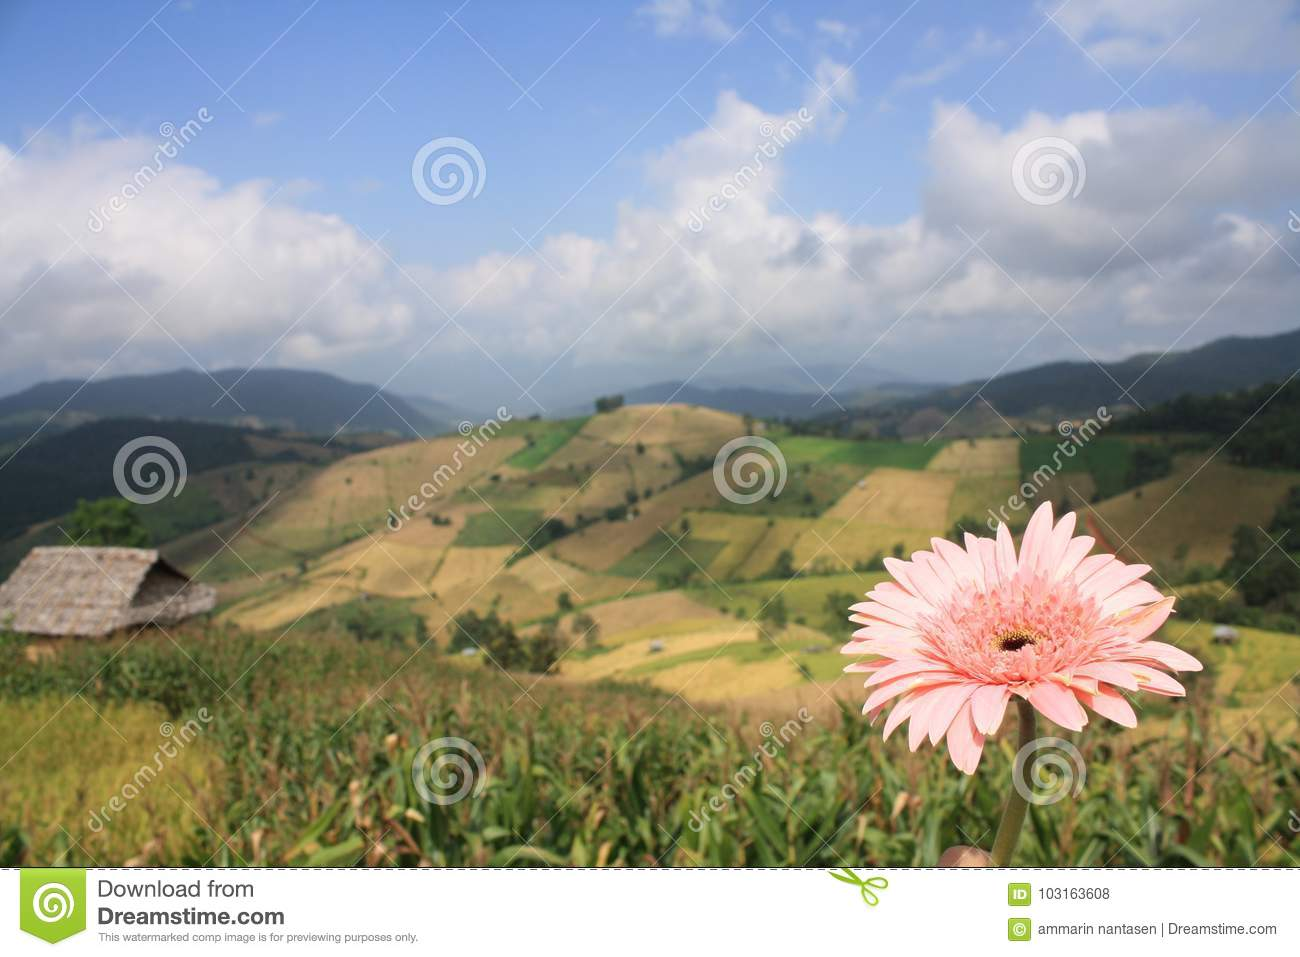 Beautiful flower and landscape of mountain background stock photo download beautiful flower and landscape of mountain background stock photo image of ecosystem plain izmirmasajfo